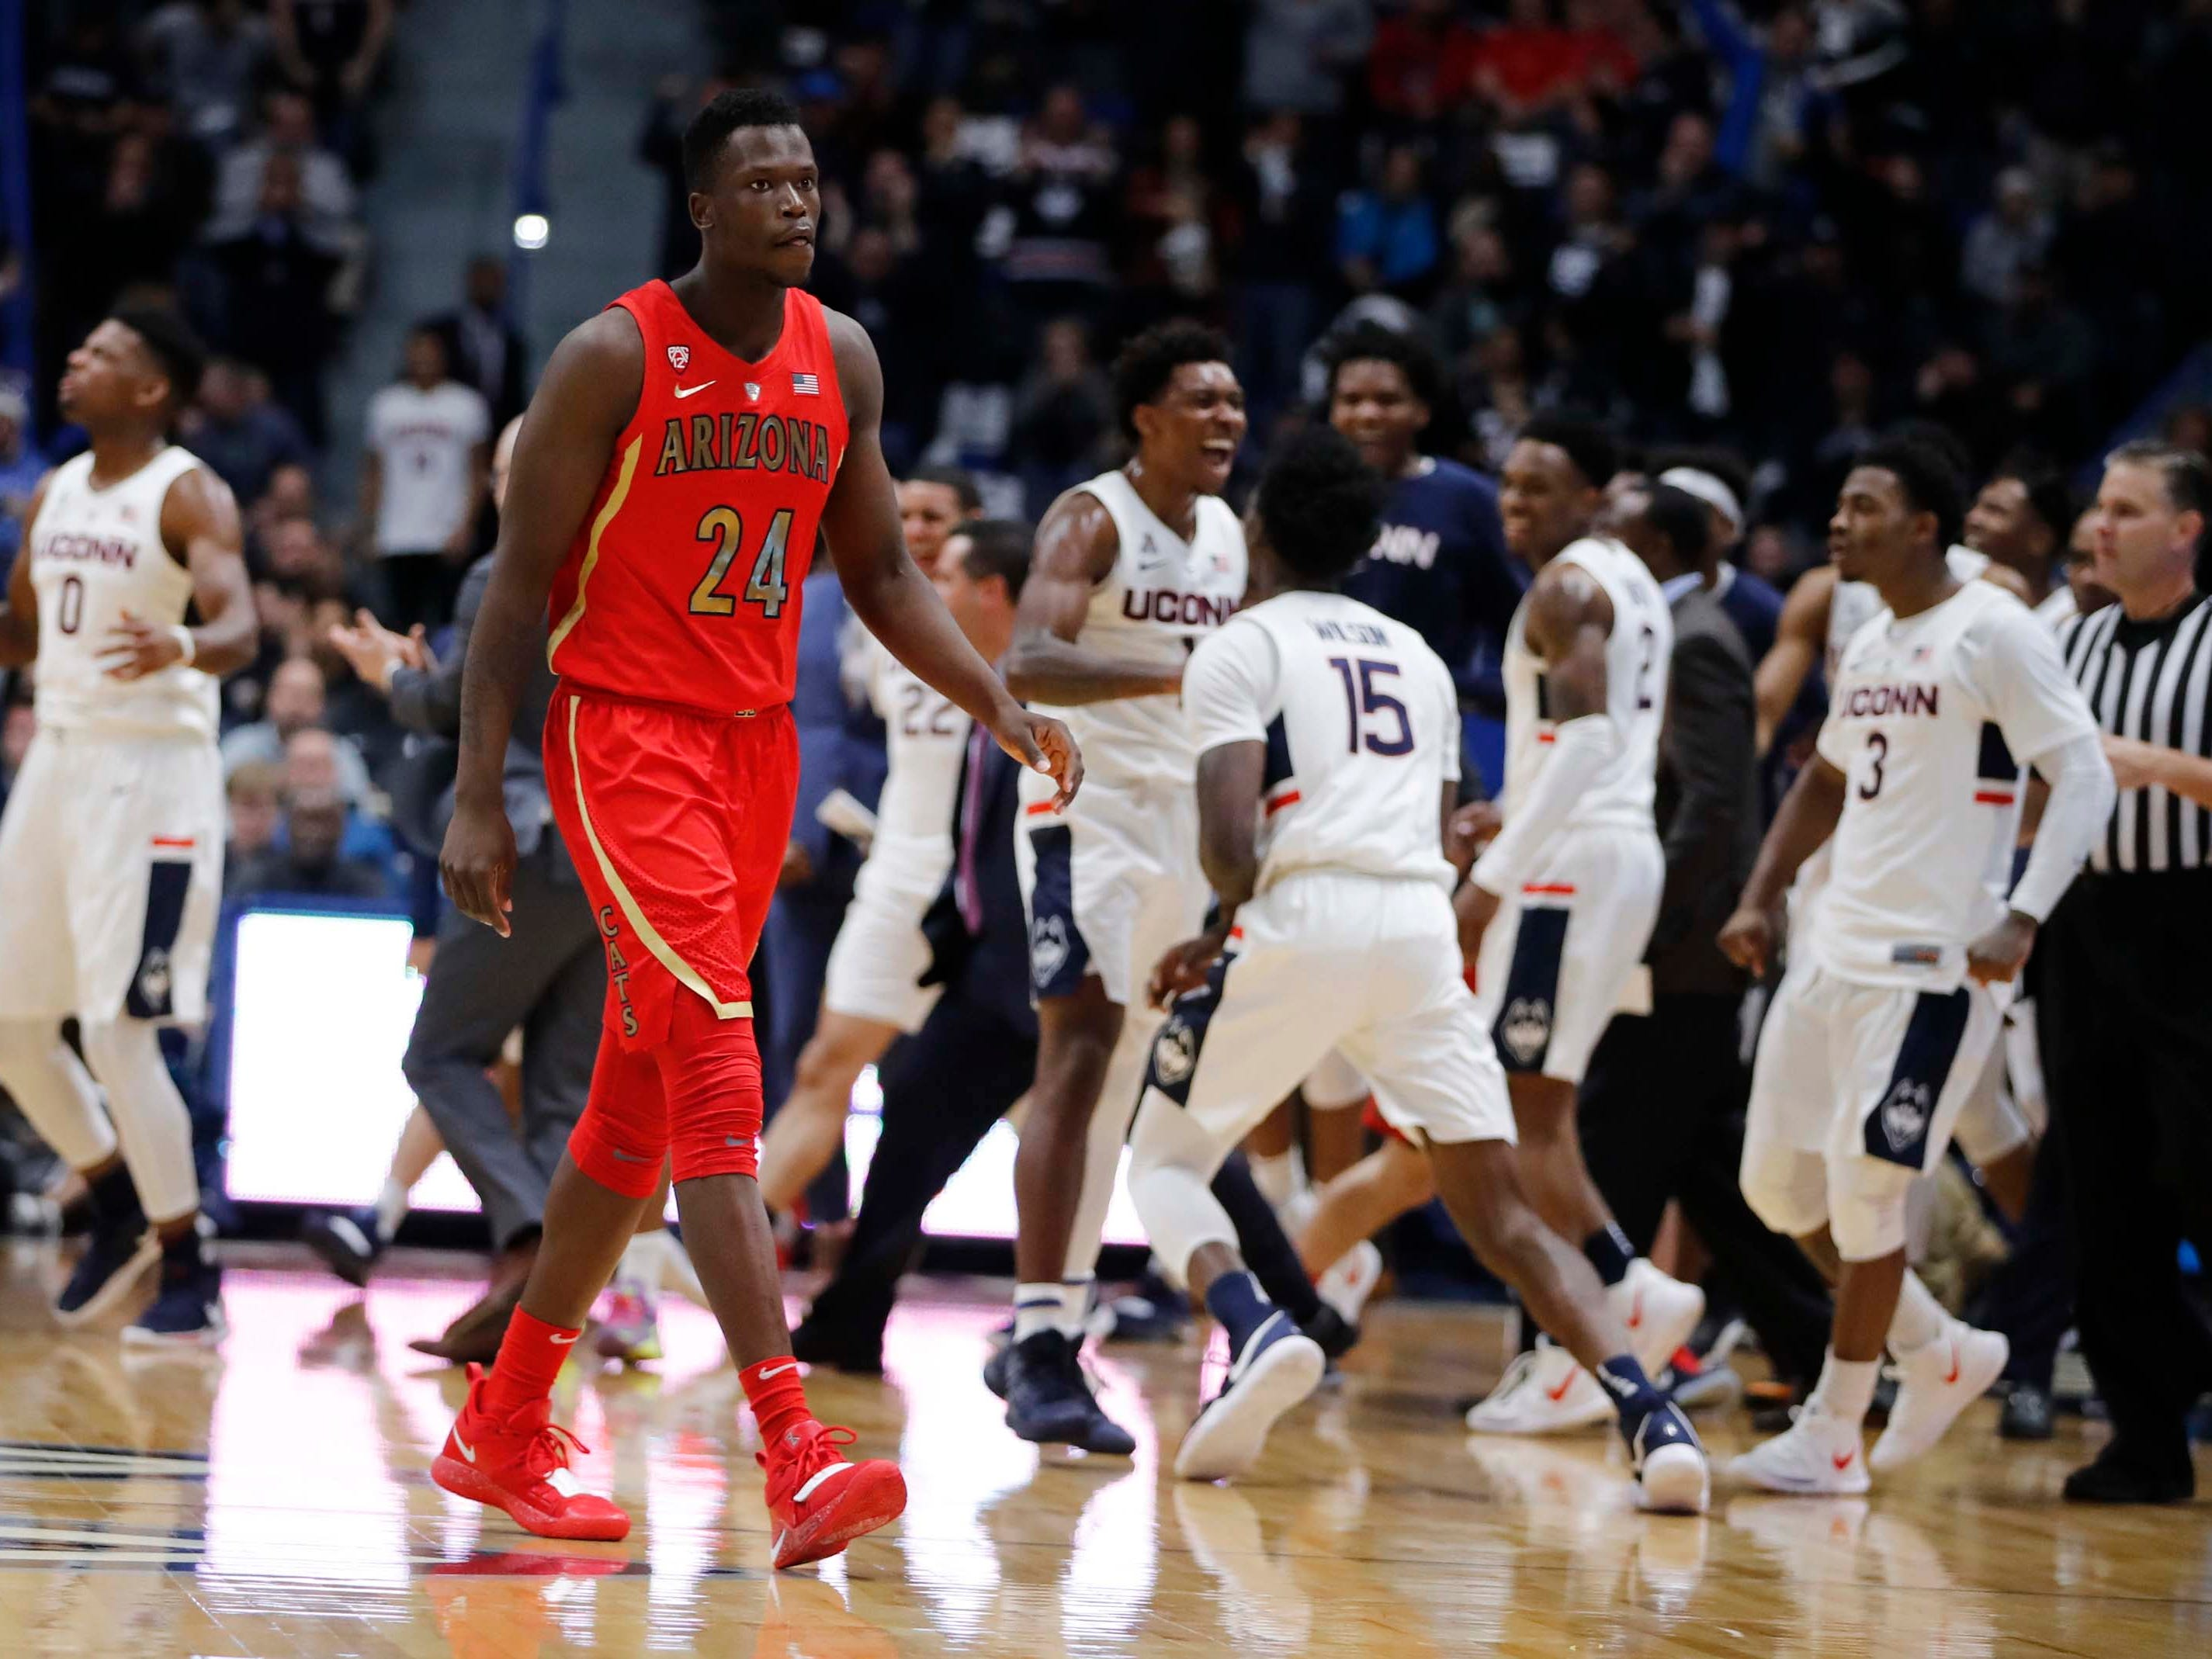 Dec 2, 2018: Arizona Wildcats guard Emmanuel Akot (24) returns to the bench during a break in the action against the Connecticut Huskies in the first half at XL Center.